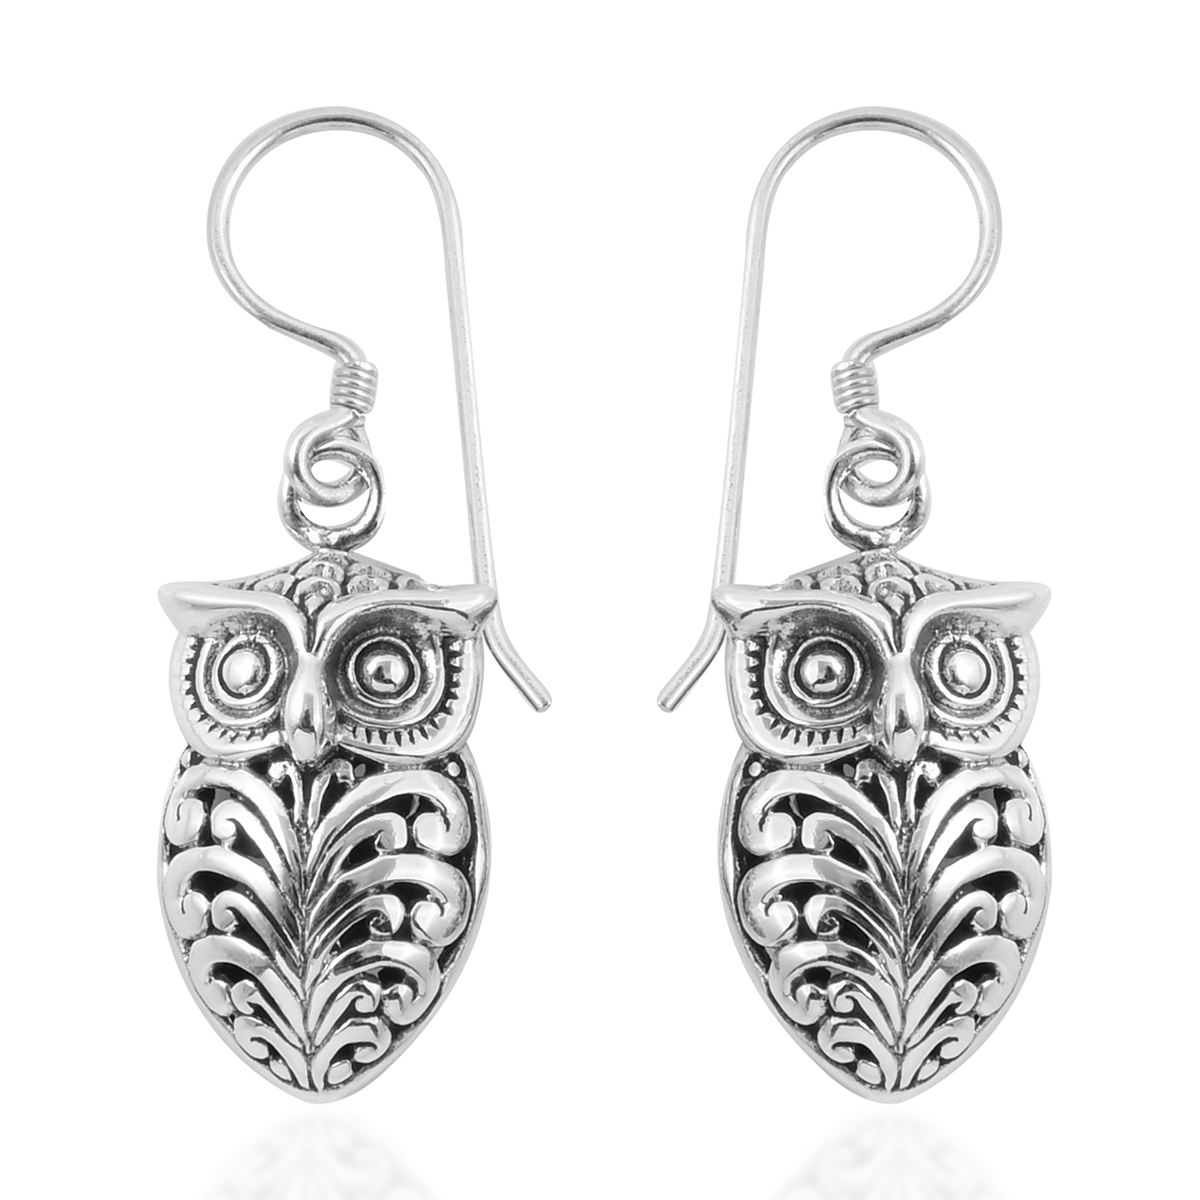 Bali Legacy Collection Sterling Silver Owl Earrings 5 36 G